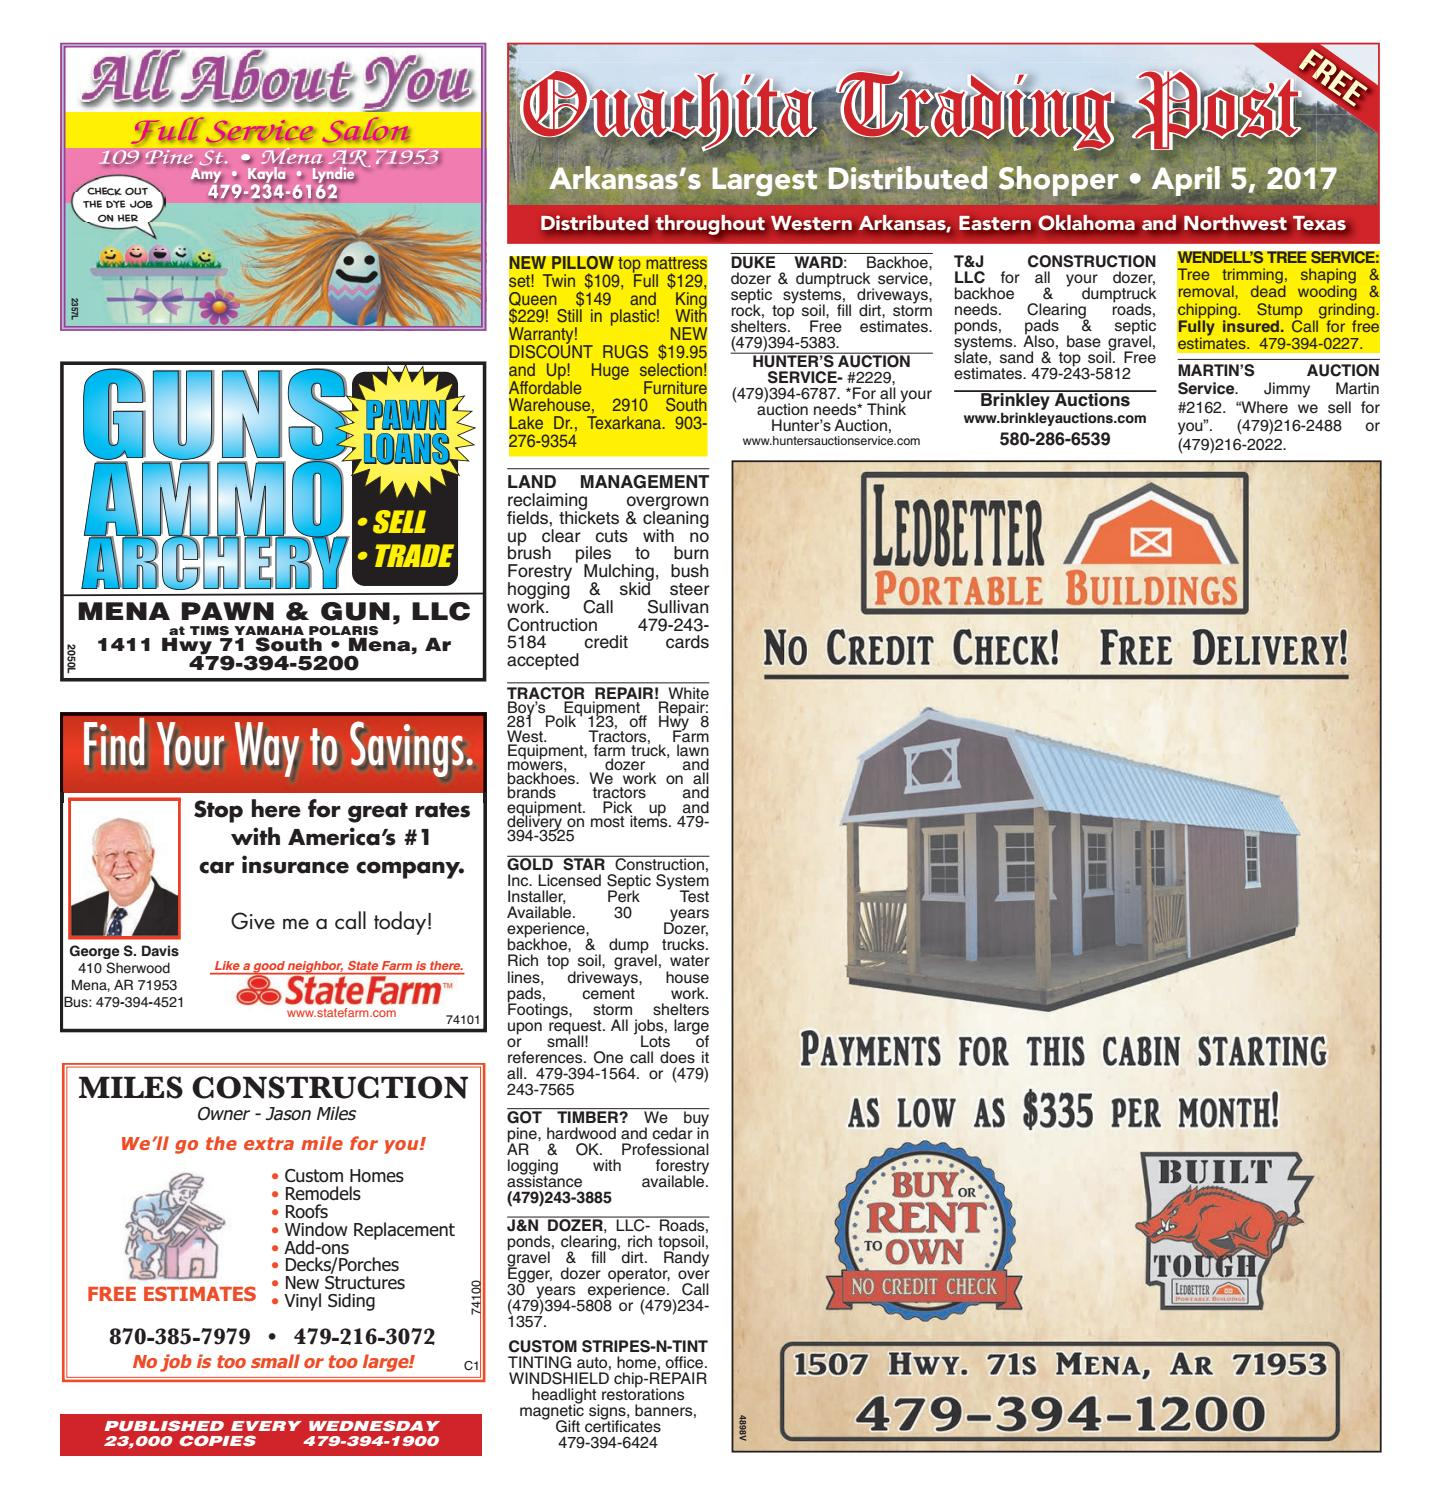 Ouachita trading post april 5 2017 by mena newspapers for Affordable furniture warehouse texarkana